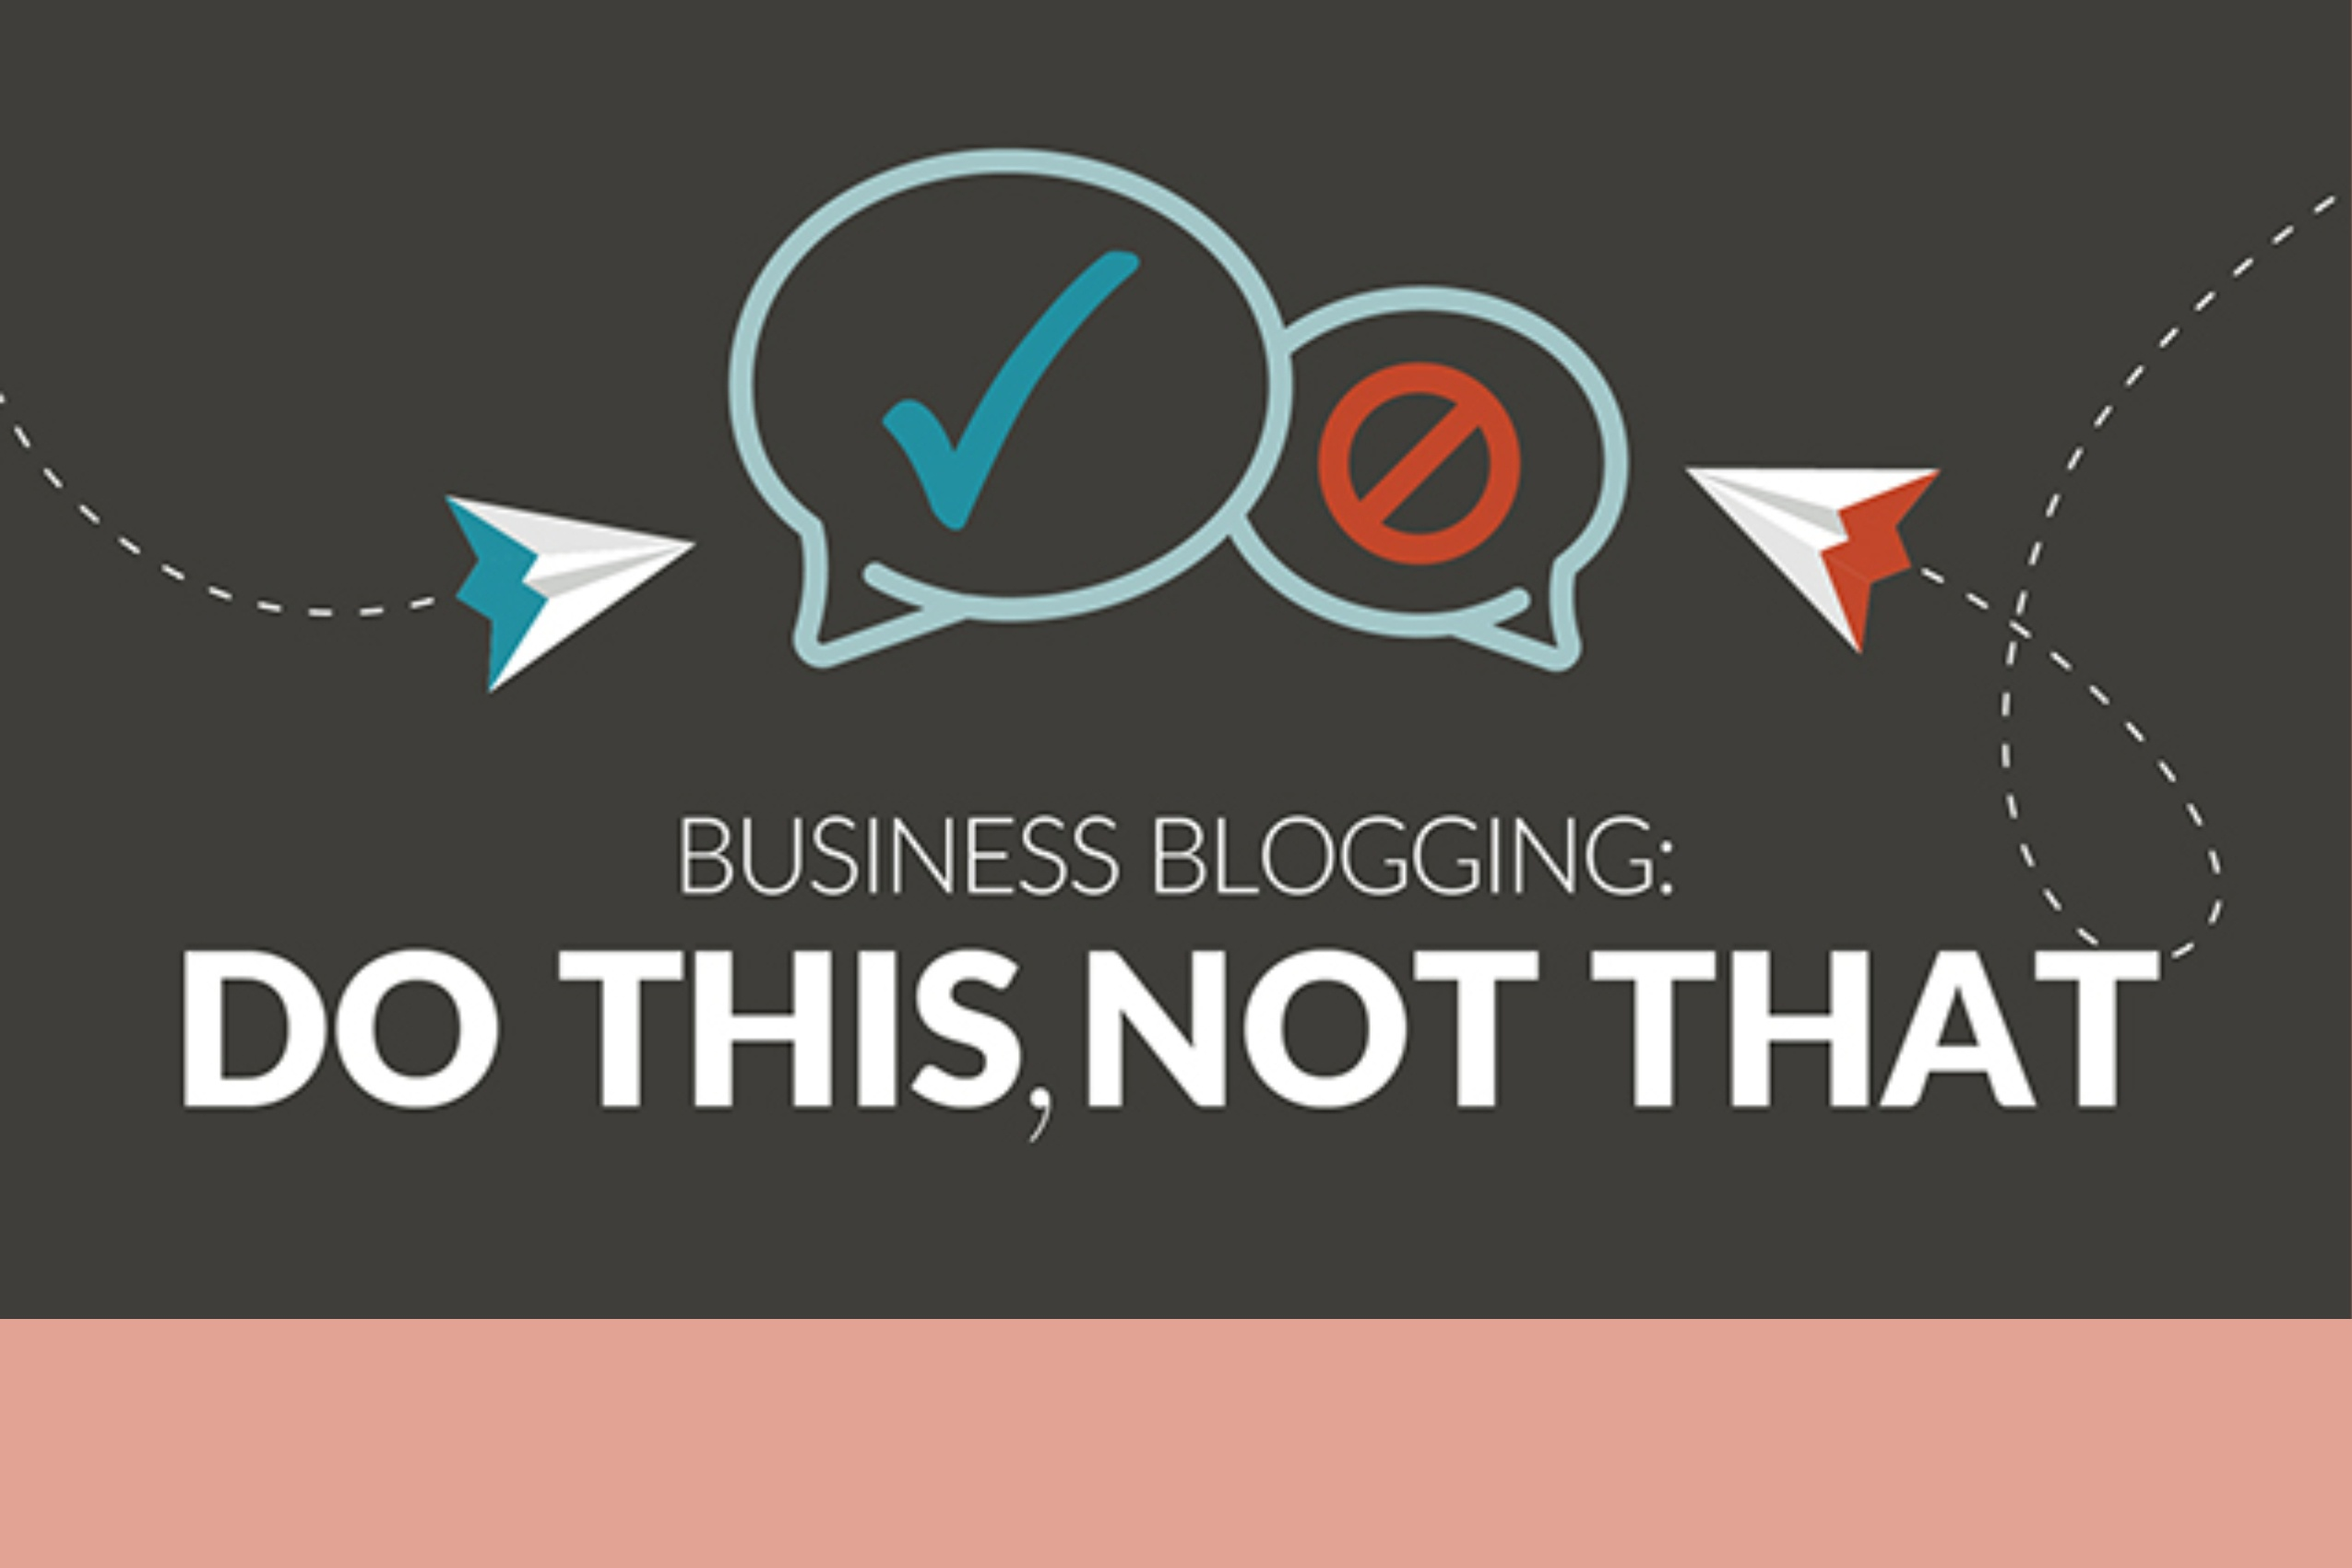 15 Business Blog Mistakes & Quick Fixes (infographic) (1)